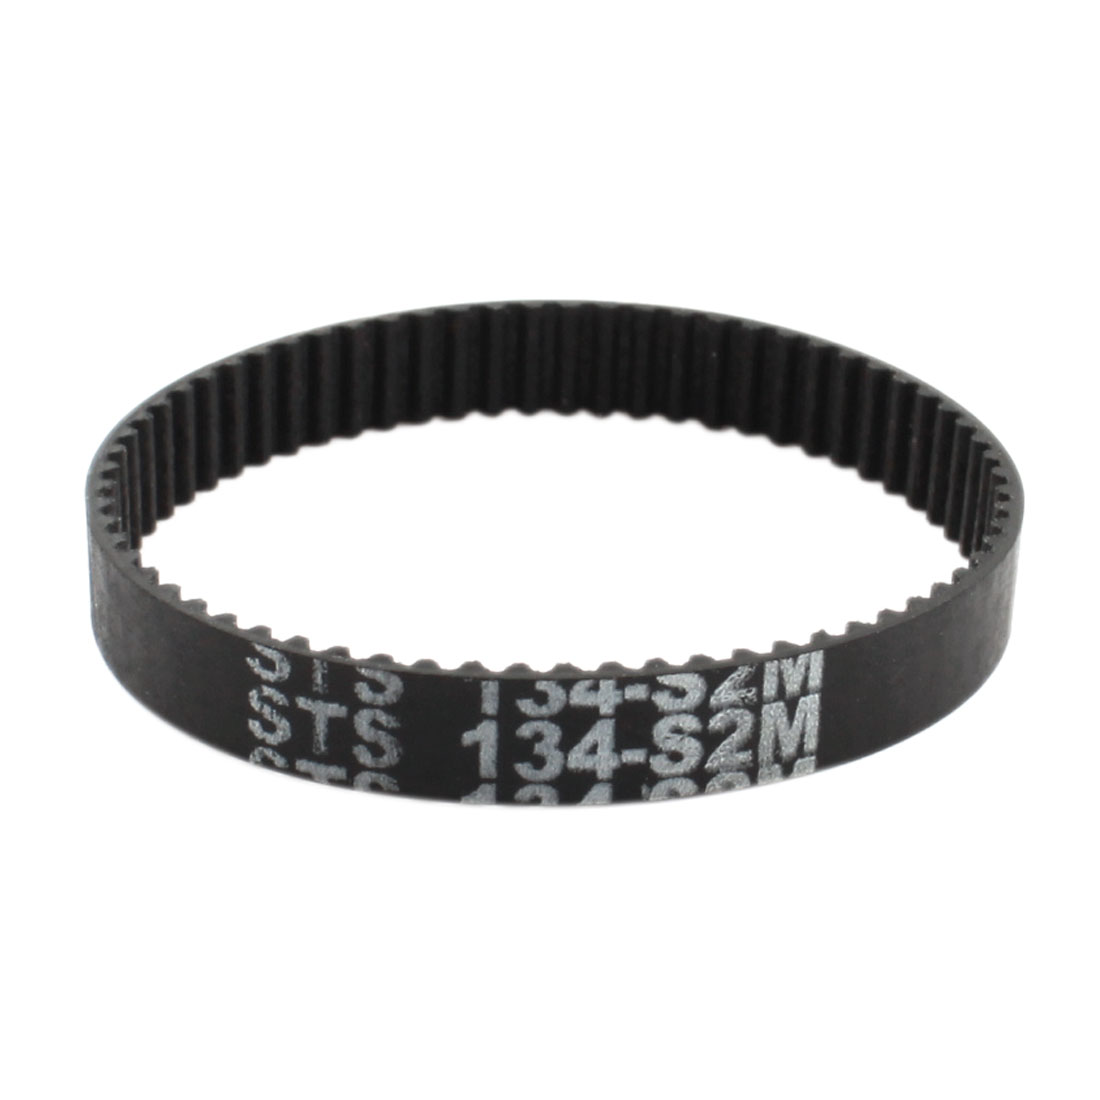 S2M-134 2mm Pitch 67-Teeth 6mm Width Black Rubber Single Side Synchronous Timing Belt